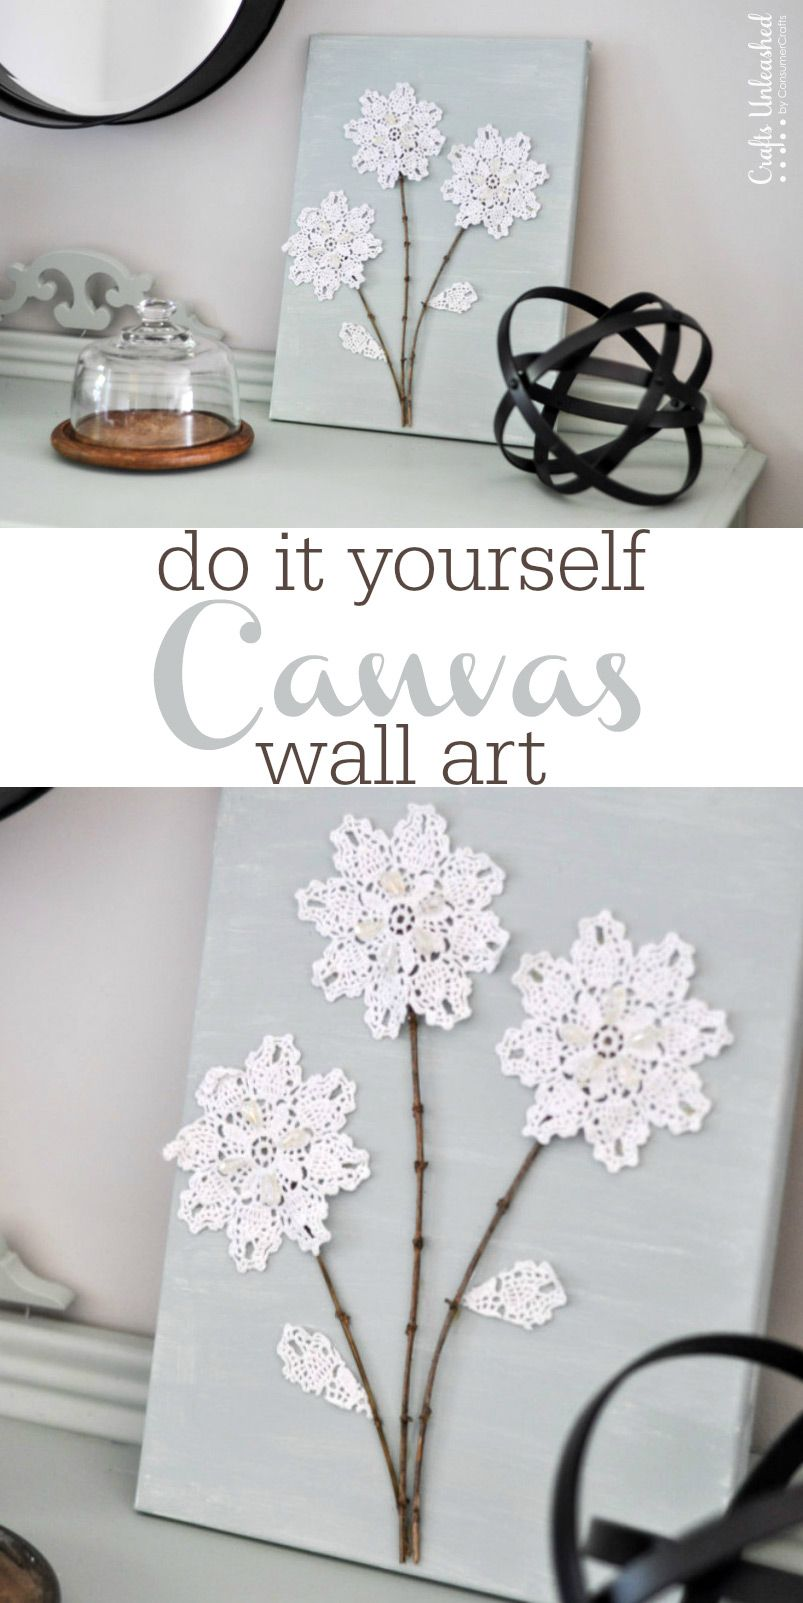 Diy Canvas Wall Art Shabby Chic Flowers Crafts Unleashed Shabby Chic Flowers Diy Canvas Wall Art Shabby Chic Diy